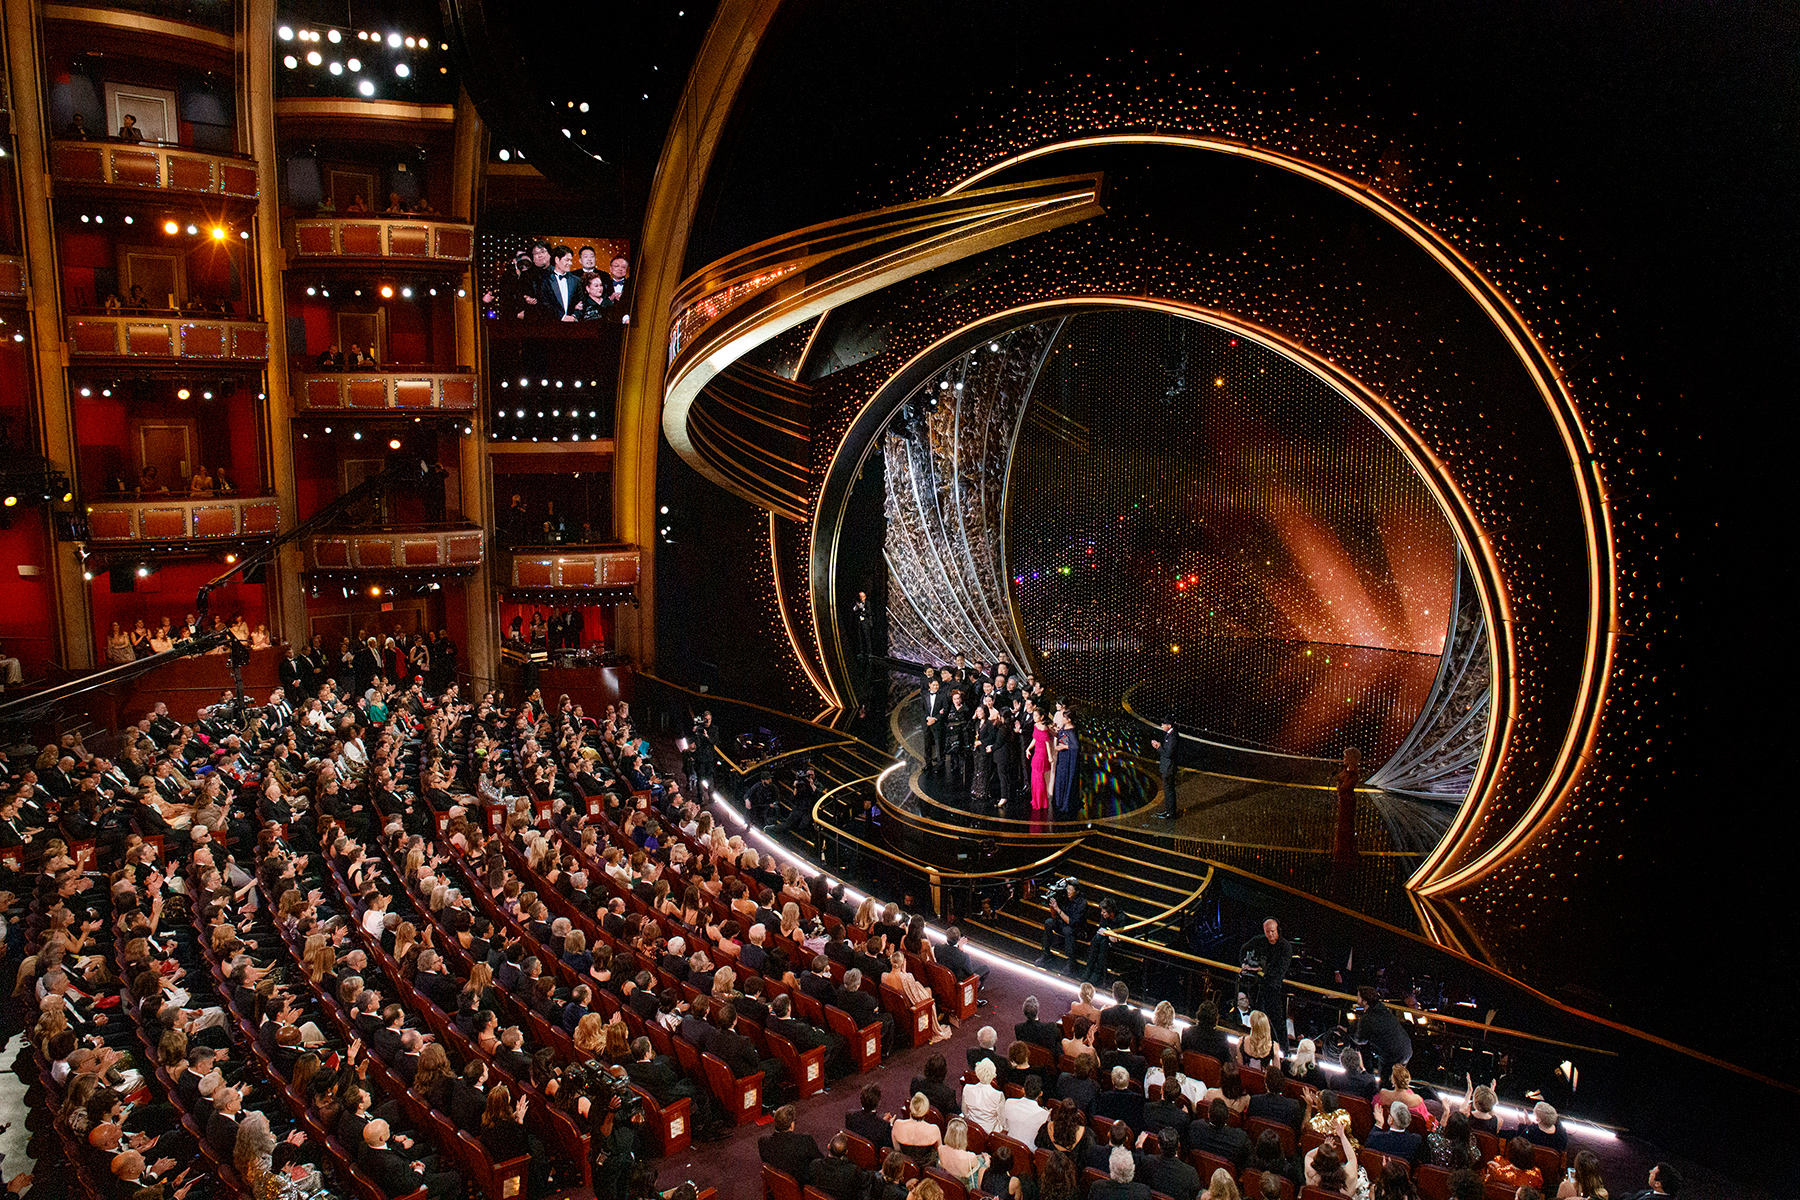 THE OSCARS® - The 92nd Oscars® broadcasts live on Sunday, Feb. 9,2020 at the Dolby Theatre® at Hollywood & Highland Center® in Hollywood and will be televised live on The ABC Television Network at 8:00 p.m. EST/5:00 p.m. PST. (ABC/ARTURO HOLMES)CAST AND CREW OF PARASITE